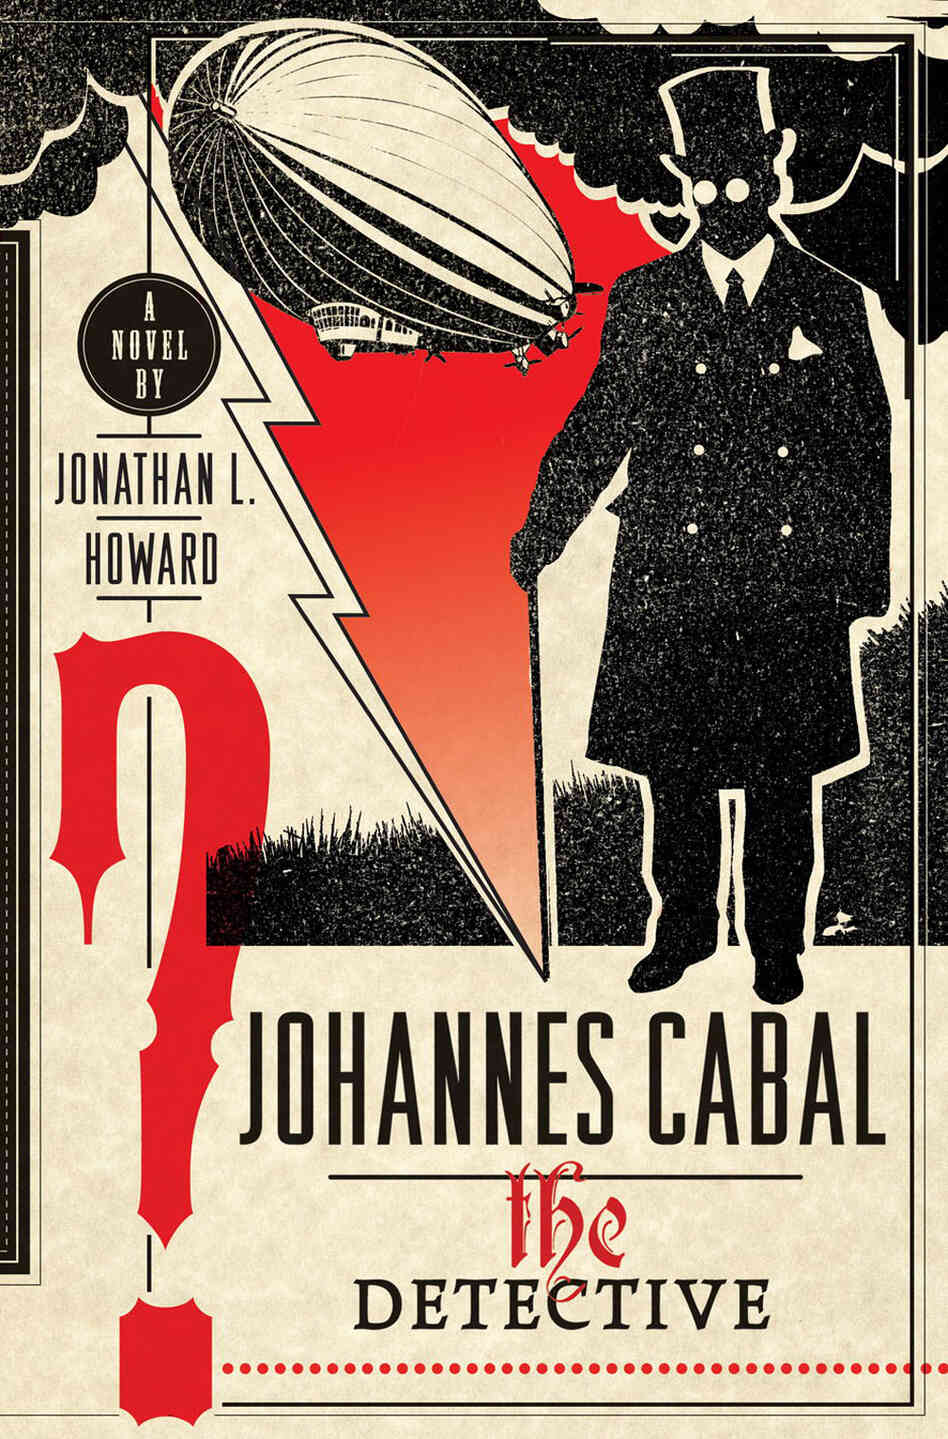 Johannes Cabal the Det